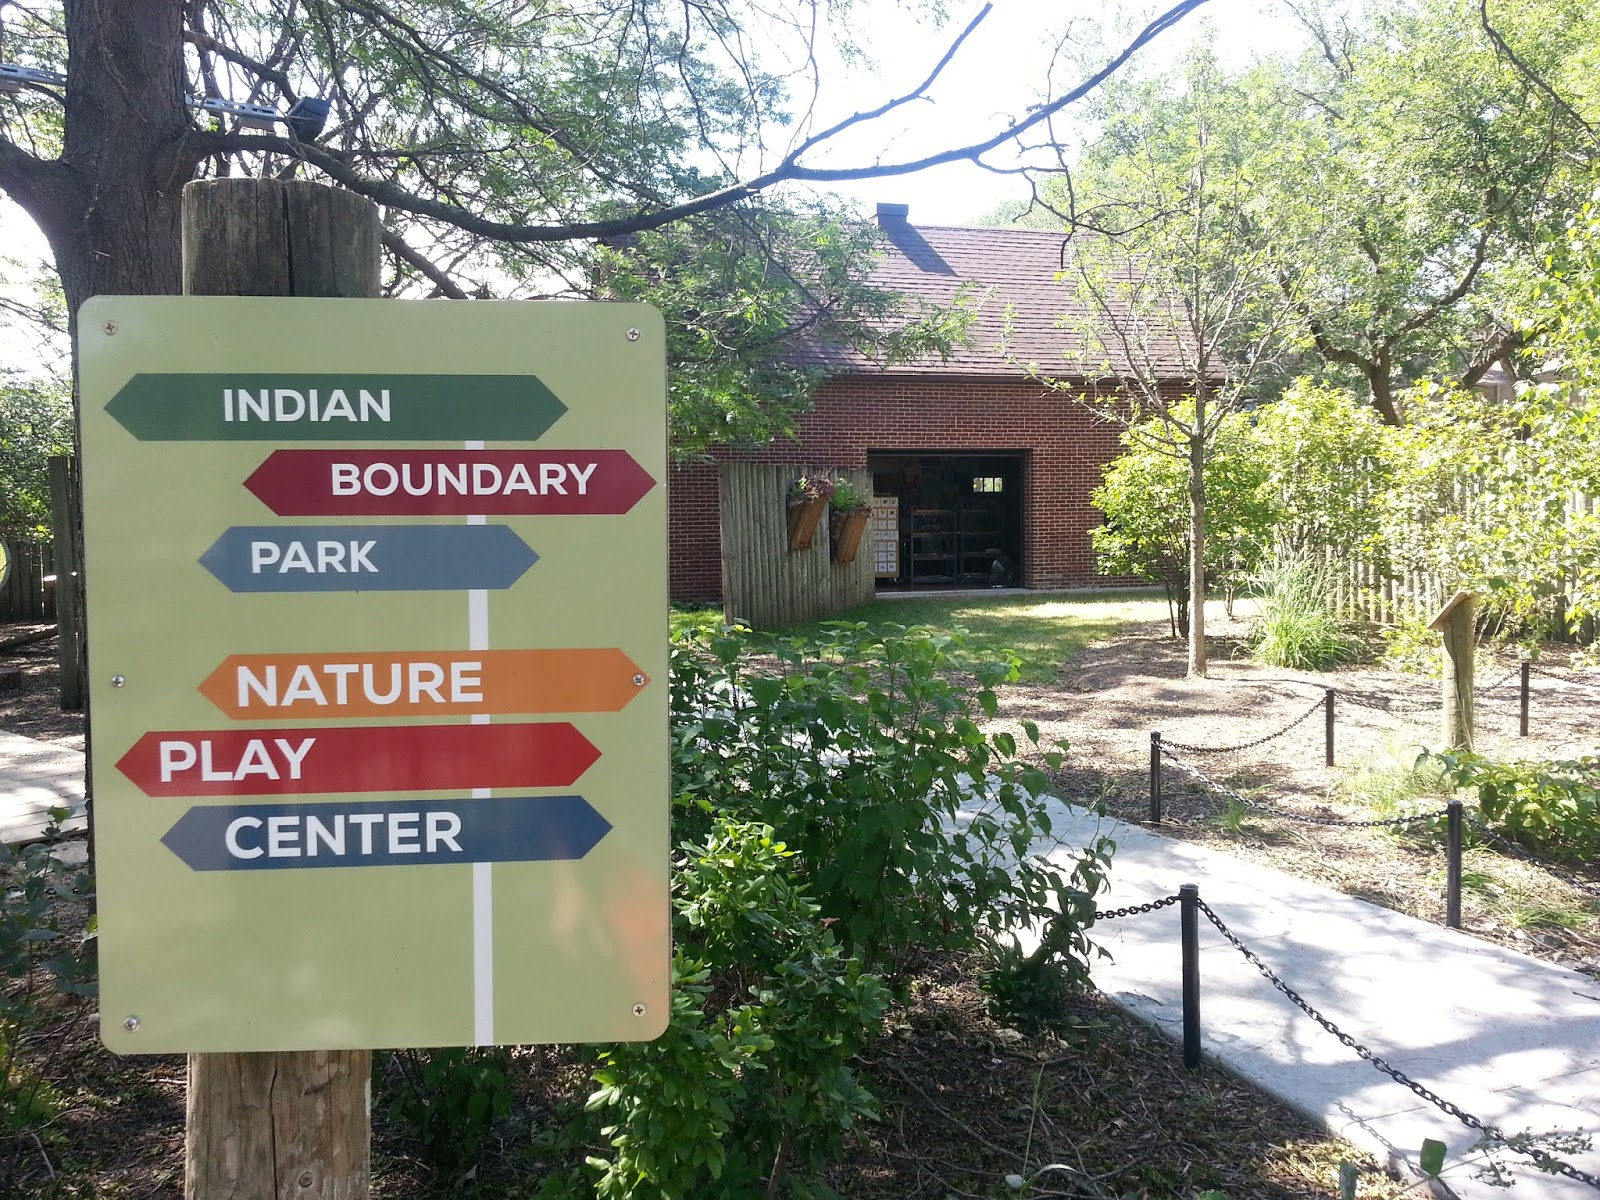 hindu singles in chicago park Get info on hindu cultural ctr view ratings,  , park forest, il 60466 map & directions (708) 748-1231  chicago philadelphia atlanta.